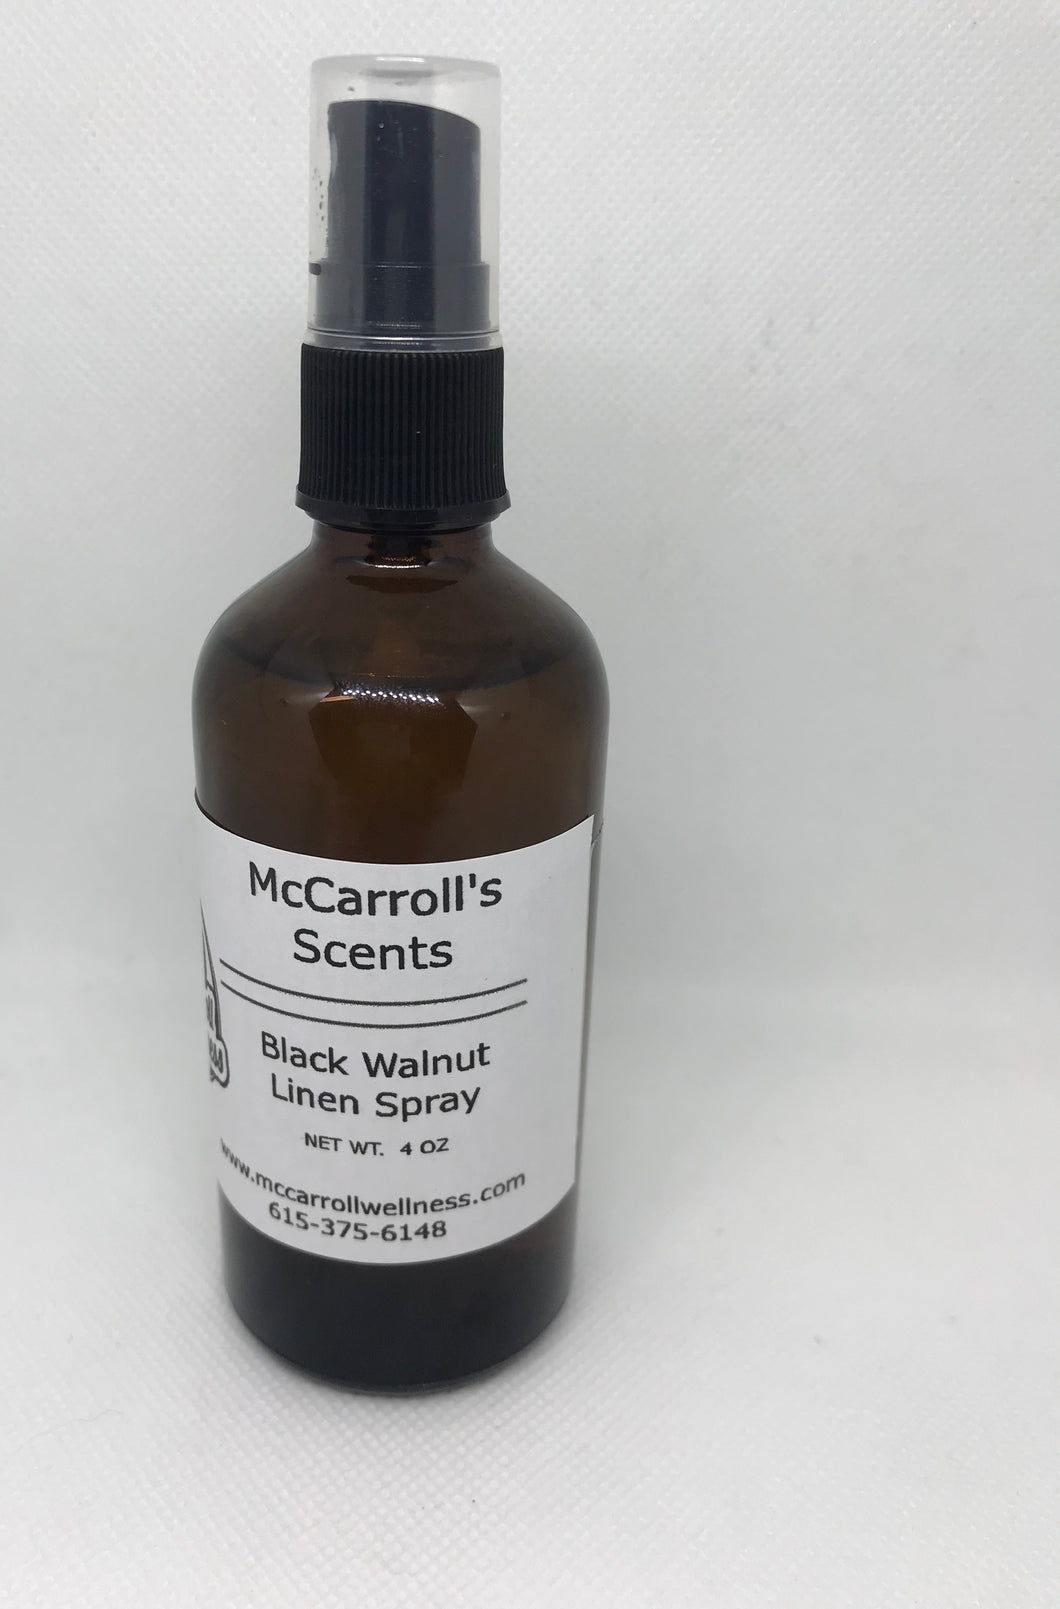 Black walnut linen spray